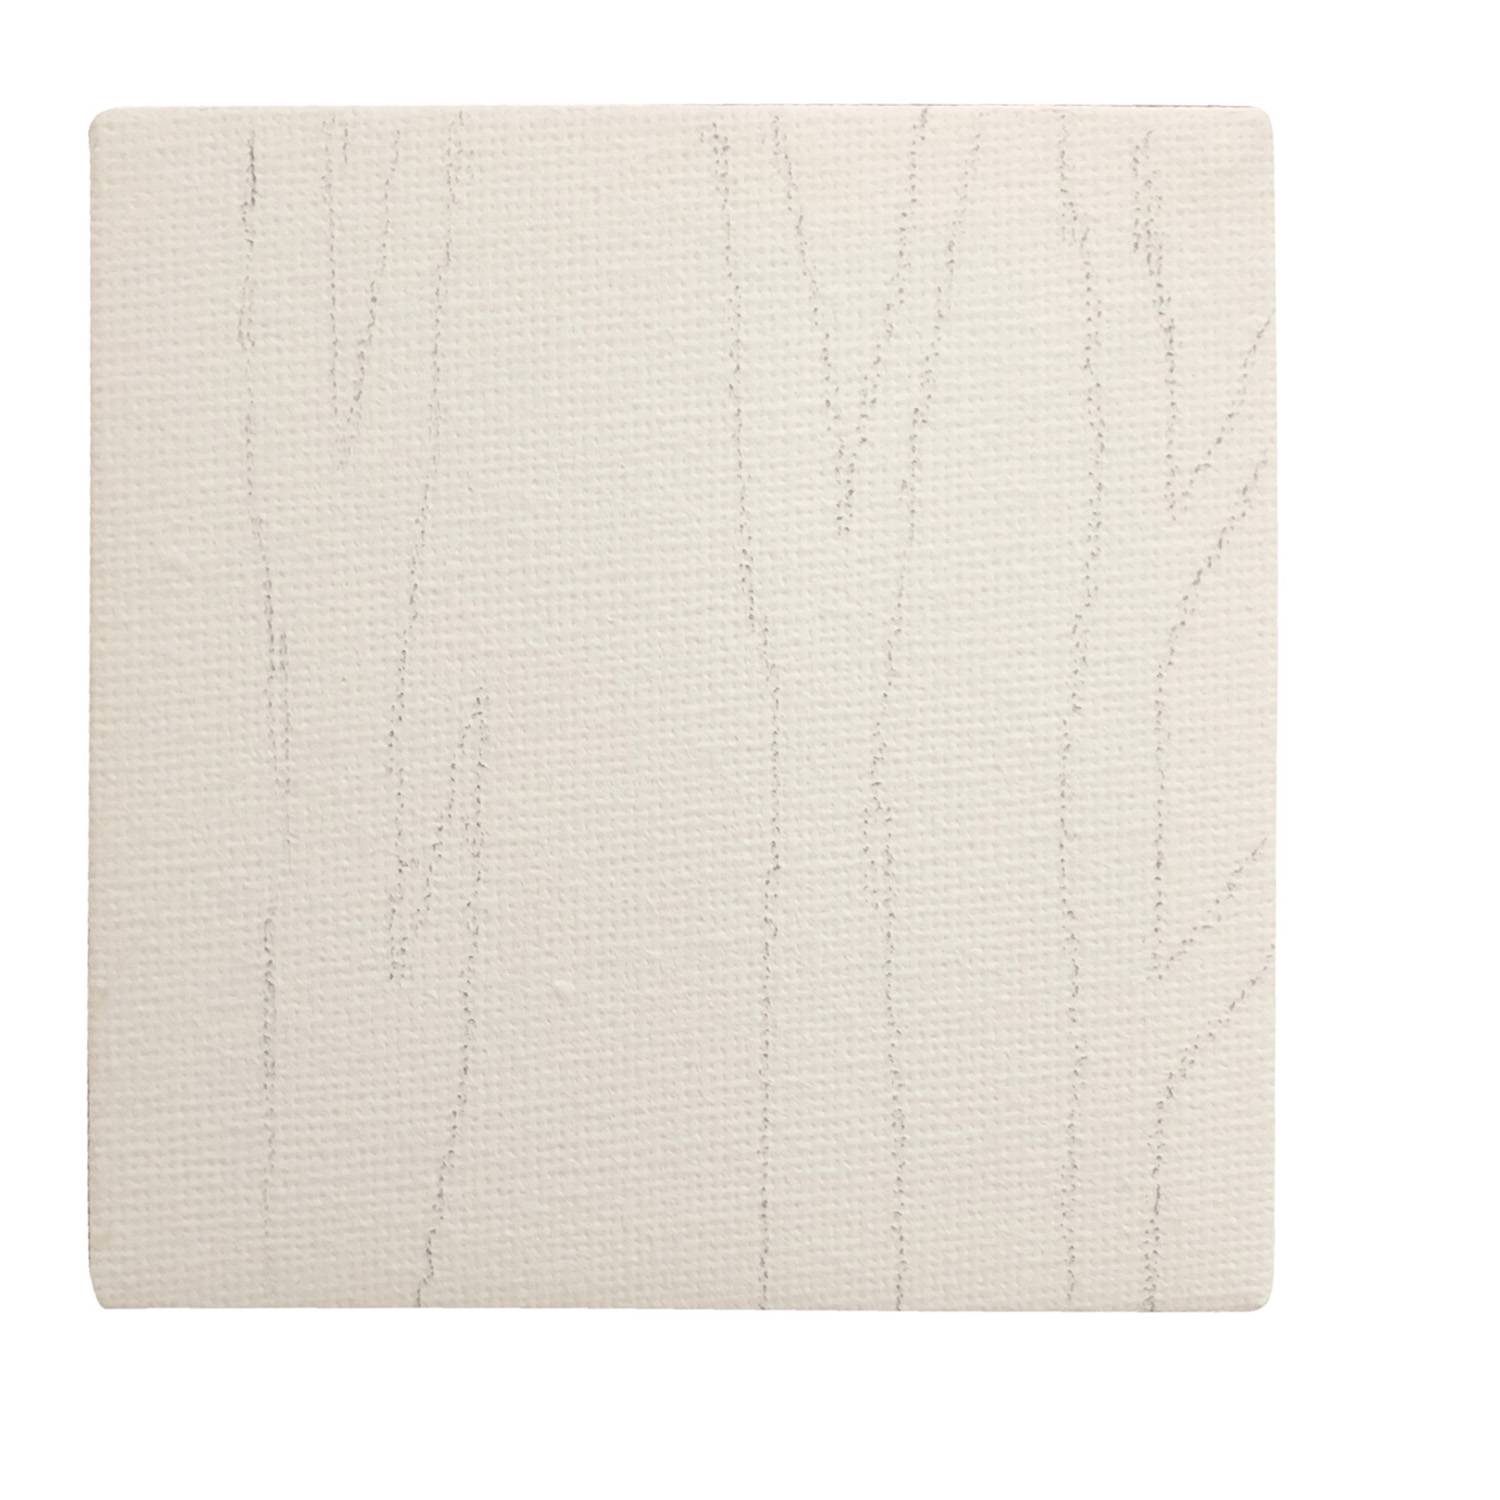 Drawing Lines Using Canvas : Birch tree paintings on canvas · art projects for kids